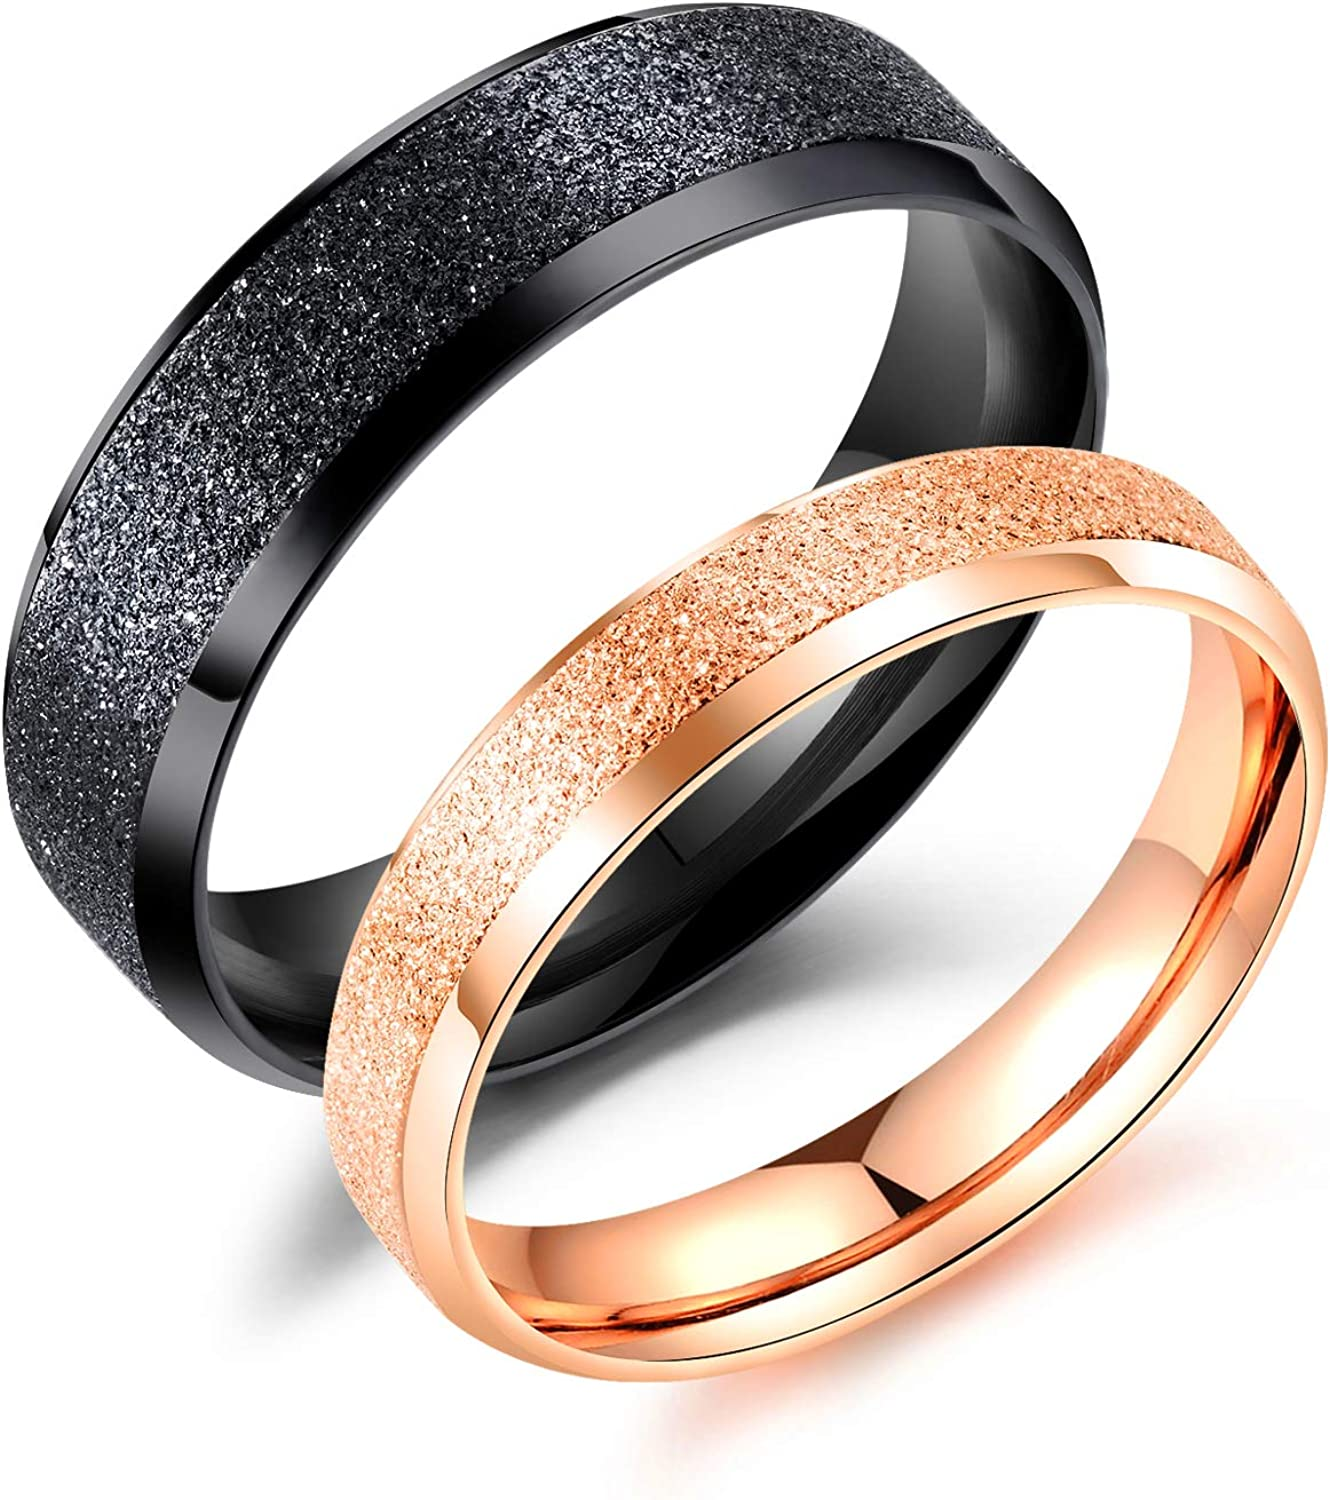 This is a photo of LOVE Beauties Jewelry Promise Rings for Couples Wedding Bands Sets for Him and Her Rose Gold Matching Set Couple Wedding Band Ring